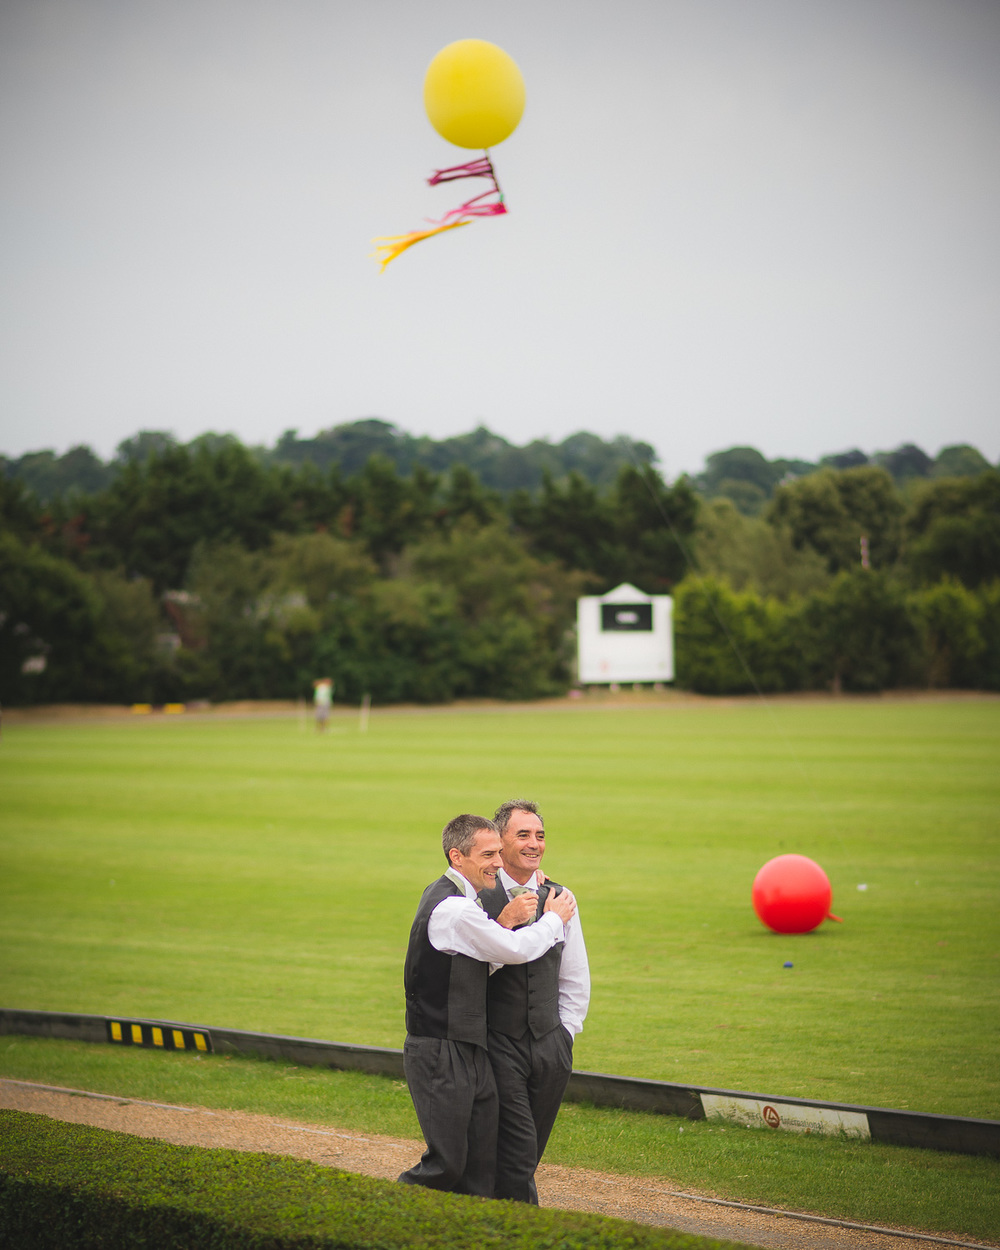 wedding-photographer-london-ham-polo-club-112.jpg